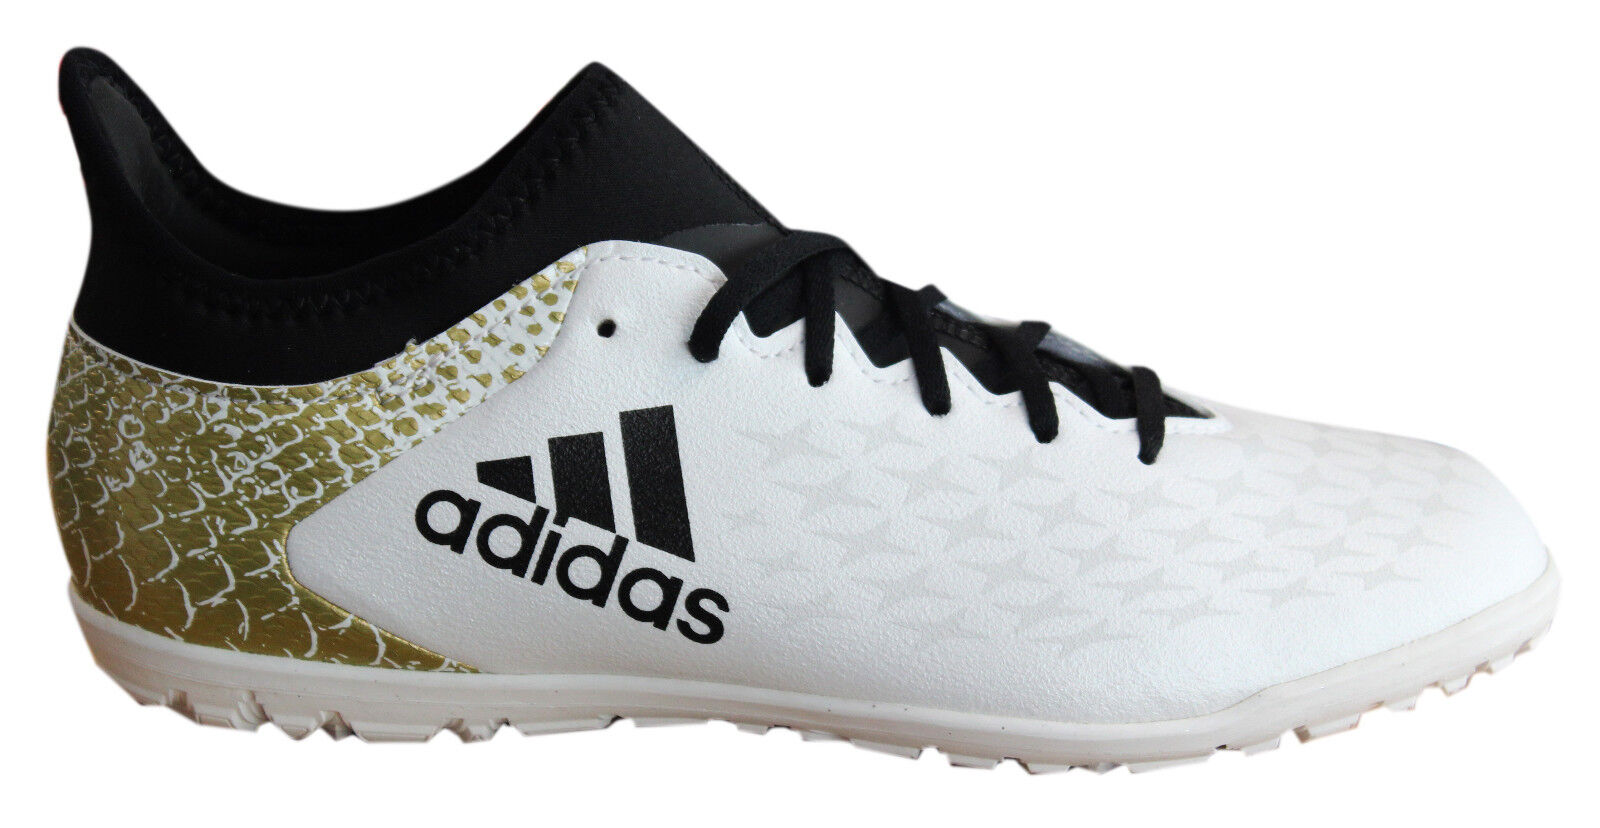 Adidas X 16.3 TF Astro Lace Up White Black Gold Kids Football Boots ... 85db4e823241